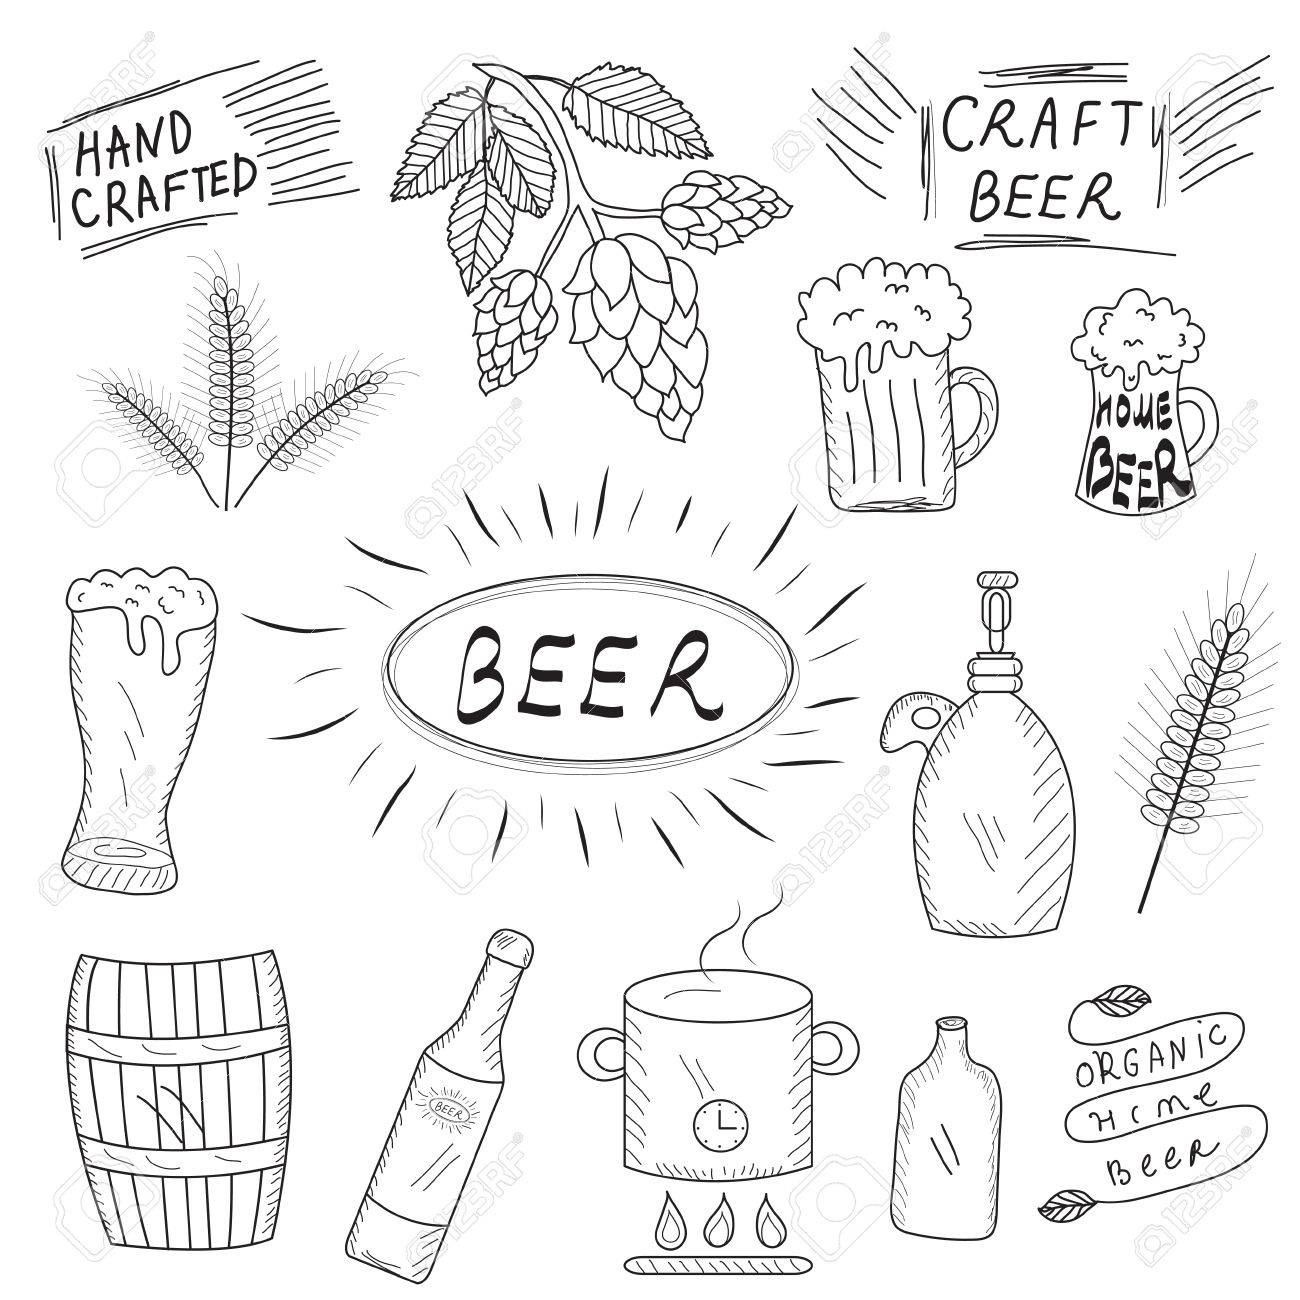 The Set Of Hand Drawn Sketch Of Beer And Home Brewery Home